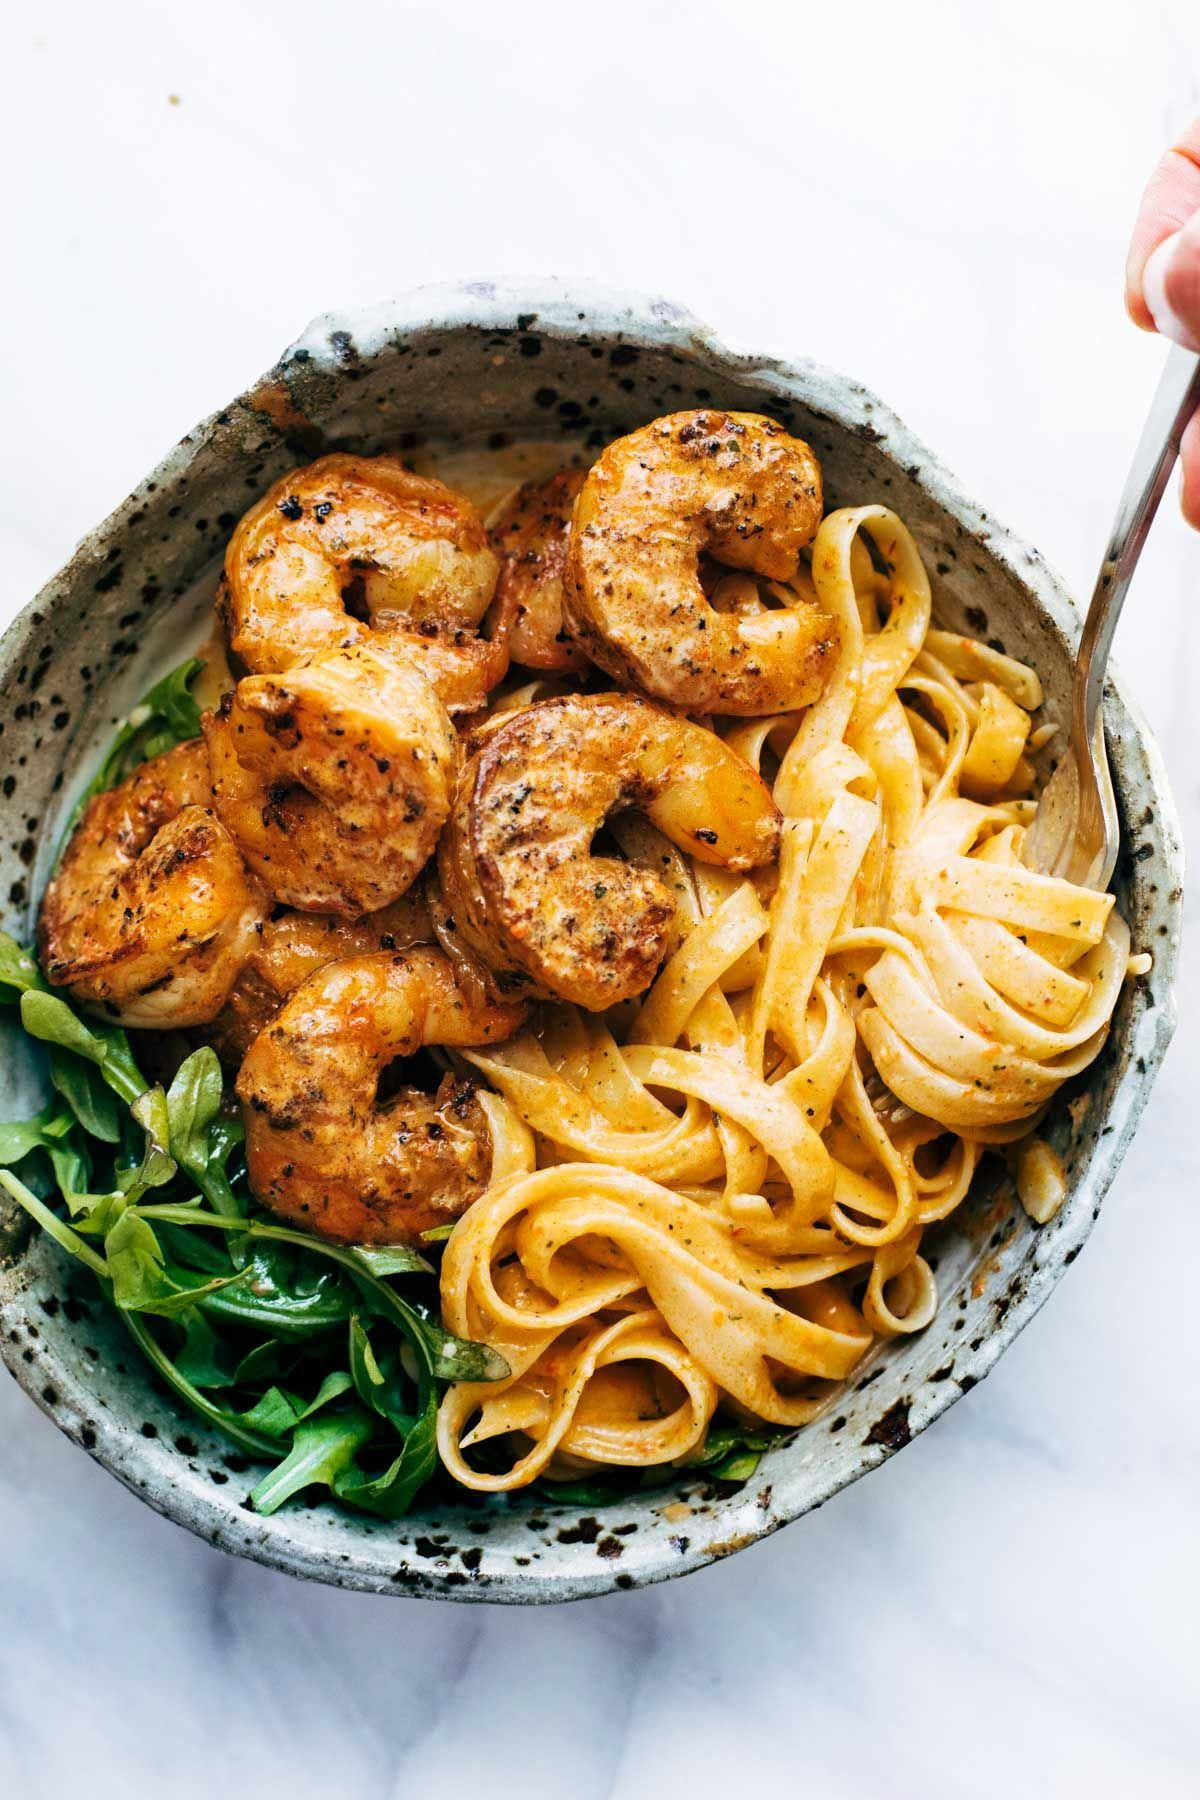 Red Pepper Fettuccine with Shrimp! It's got quick, pan-fried shrimp, creamy noodles, and red pepper / garlic / butter / lemon-ish sauce vibes. Perfect quick and easy dinner! |